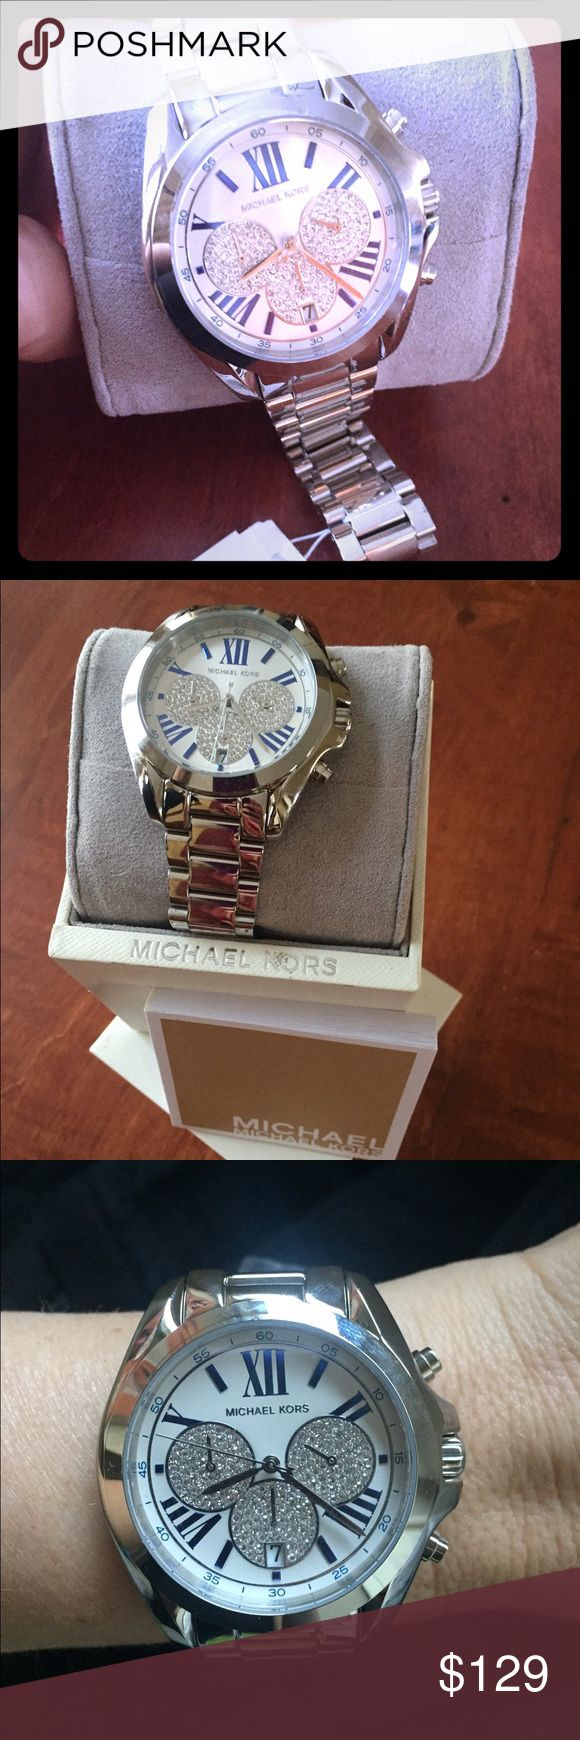 Michael Kors silver watch Gorgeous Roman numeral Michael Kors watch. Silver with white face and blue Roman numerals. Has number date at the 6 pm position. Three crystal plated small watch faces on face as well. You'll love it! Michael Kors Accessories Watches